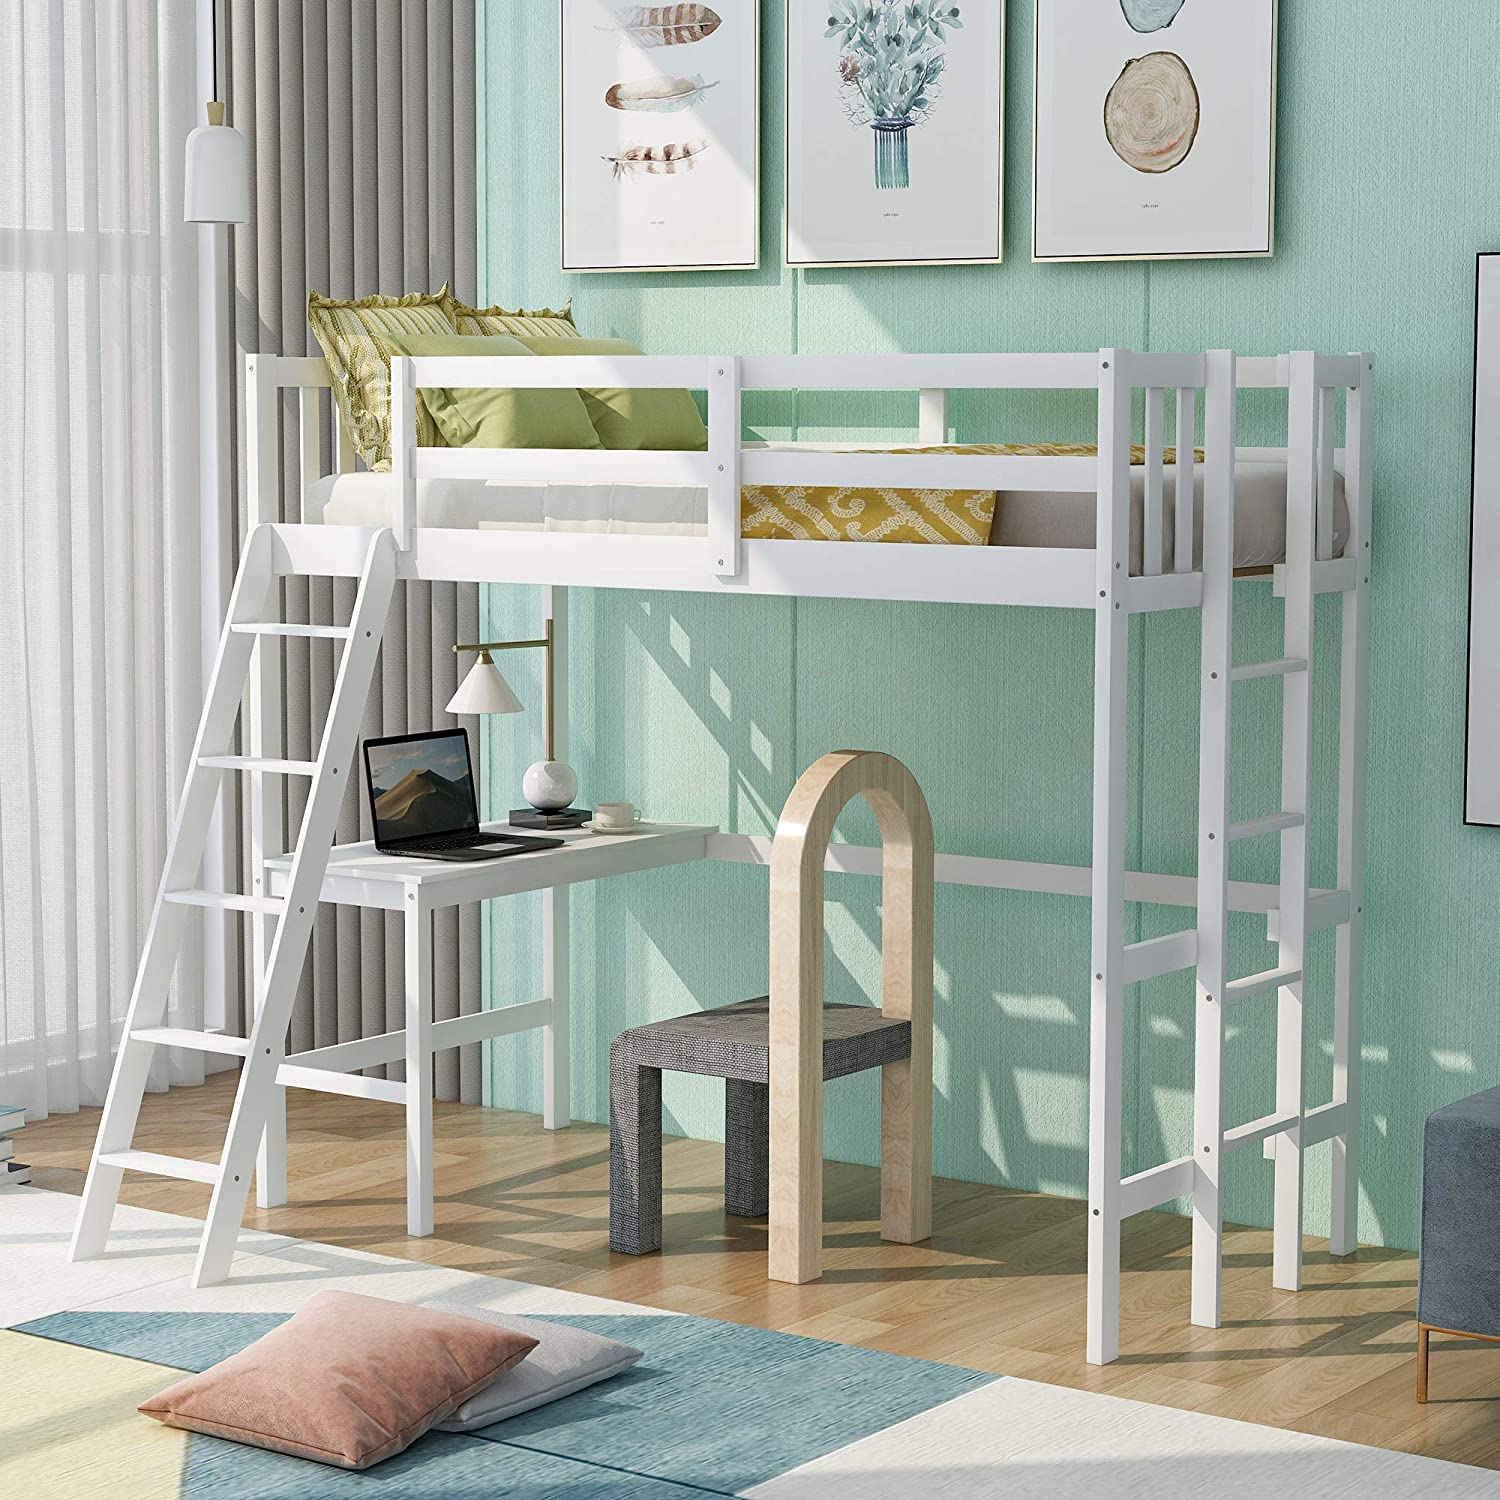 Wooden Twin Size Loft Bed National uniform free shipping Wood Under-Bed Fixed price for sale Rockjame with